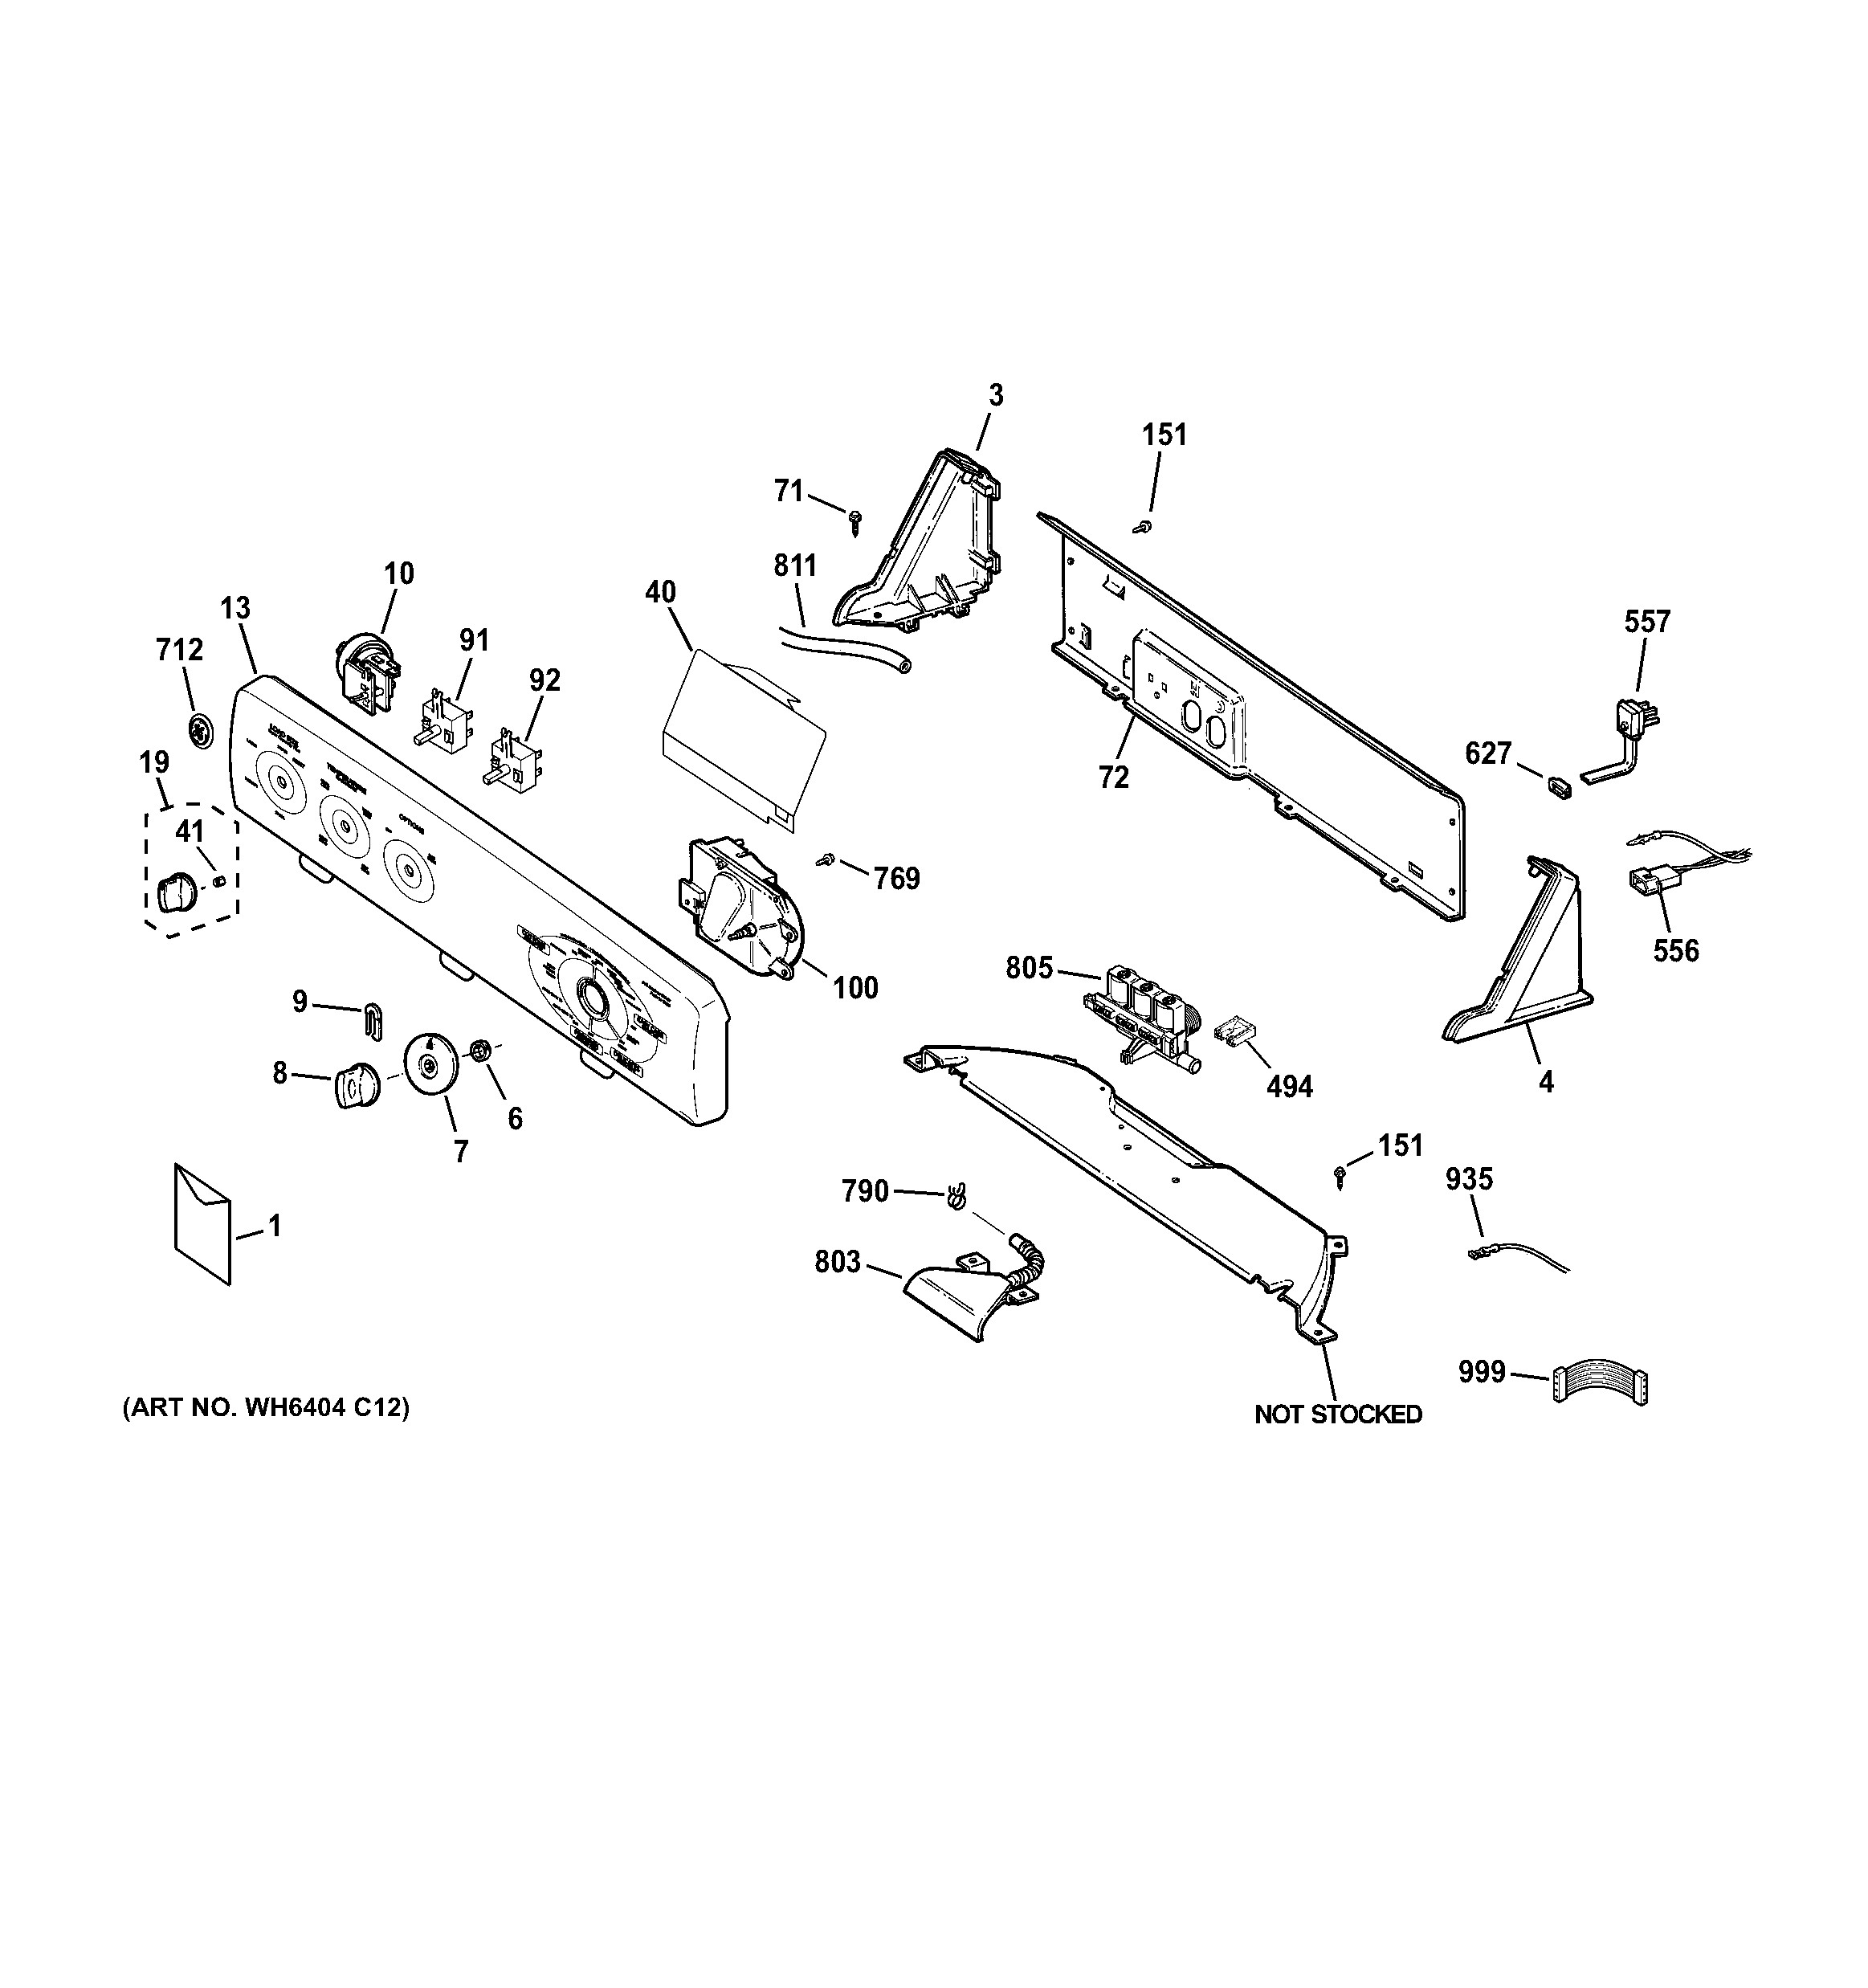 Steering and Suspension Diagram Ge Model Gban2800f0ww Residential Washers Genuine Parts Of Steering and Suspension Diagram Steering Linkage Diagram — Daytonva150